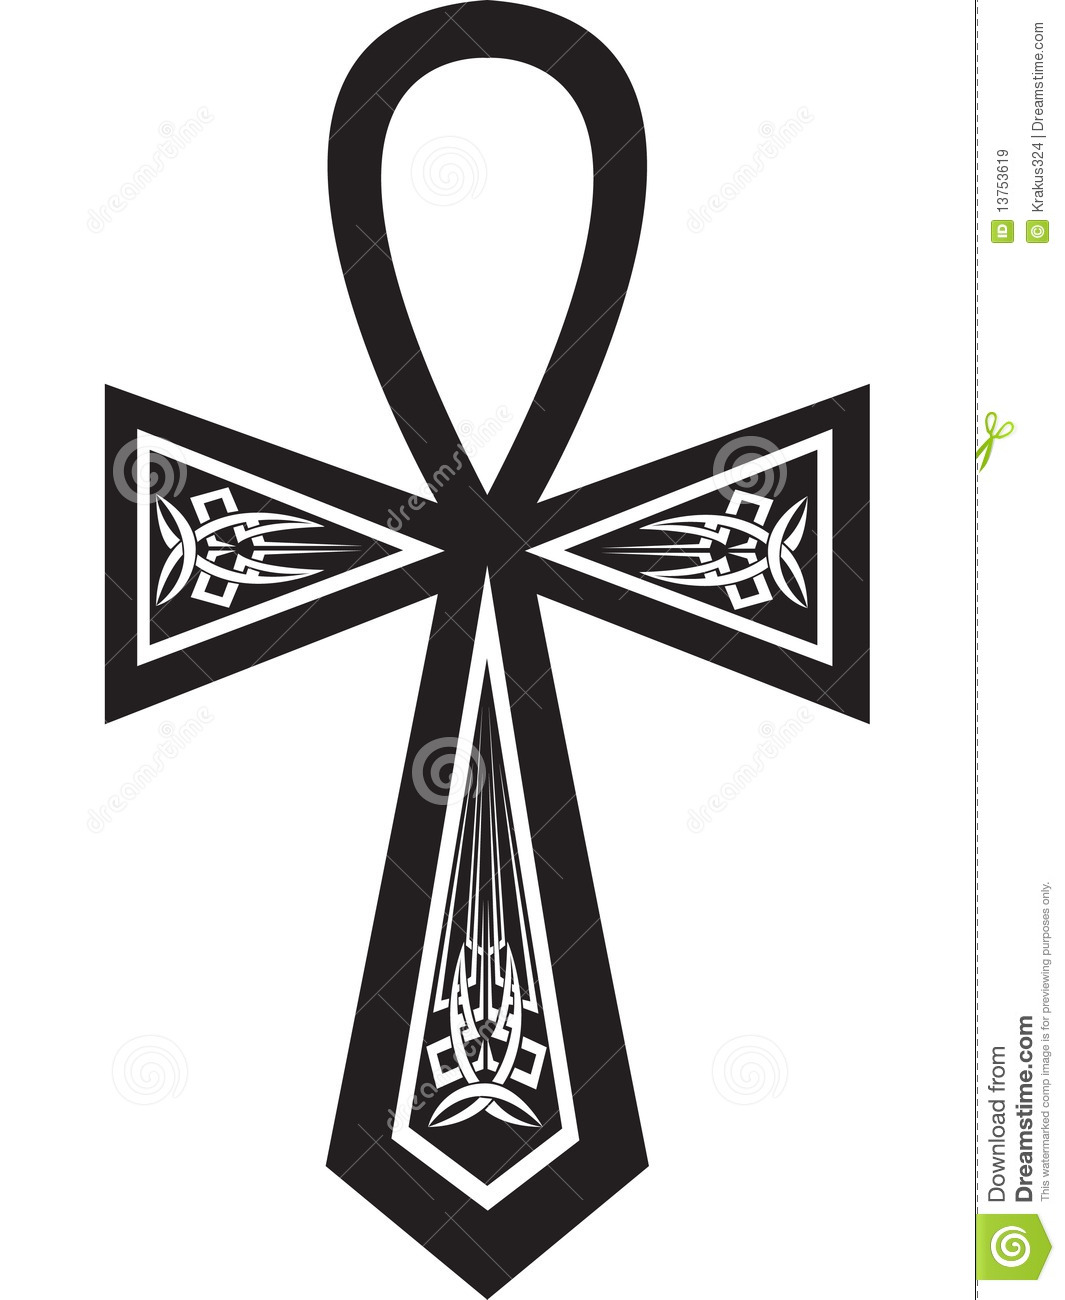 Ankh Cross Royalty Free Stock Images